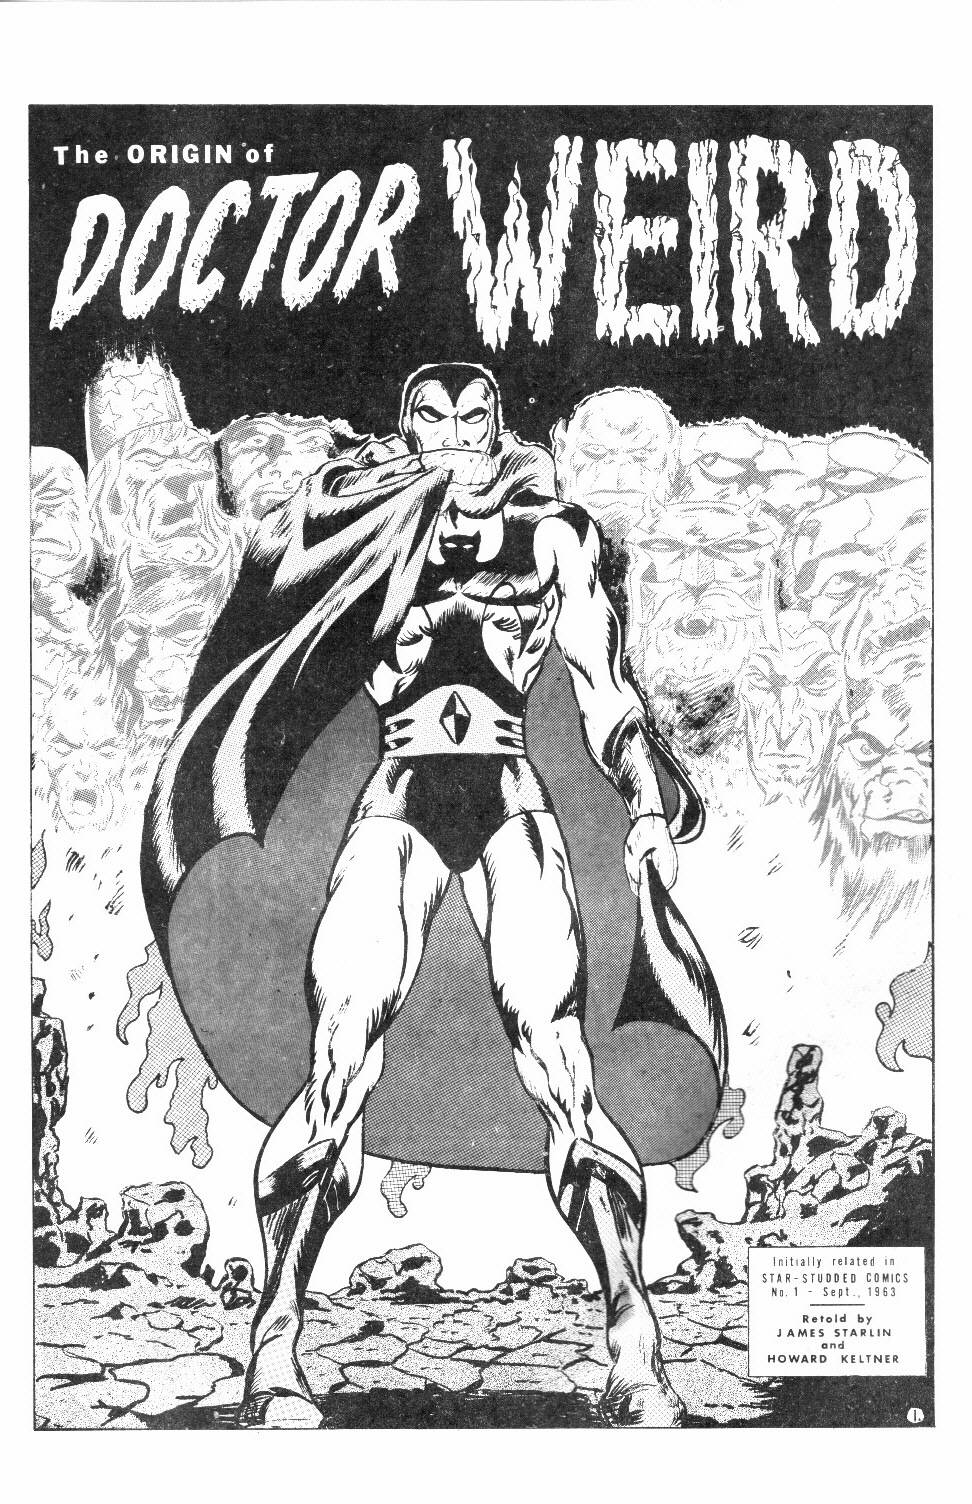 Read online Dr. Weird Special comic -  Issue # Full - 7